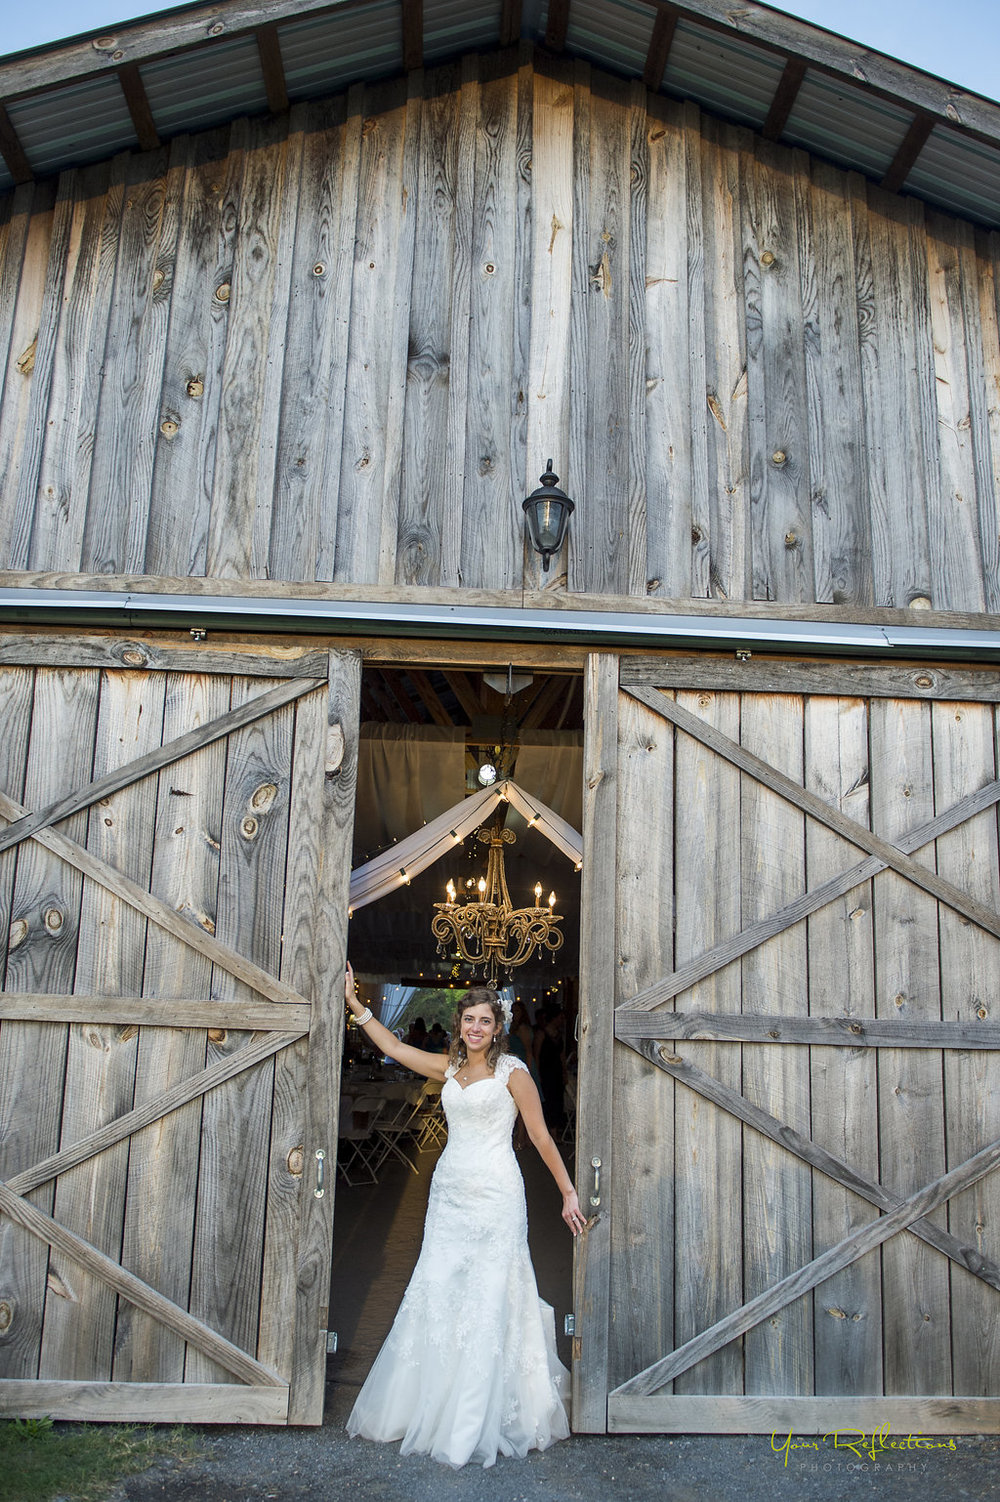 Curtis + Sarah's elegant, rustic barn wedding with a live swing band and a Disney's UP inspired card box on their gift table was so much fun to coordinate! Click through to see more of photos from their wedding day! @paperswalloweve